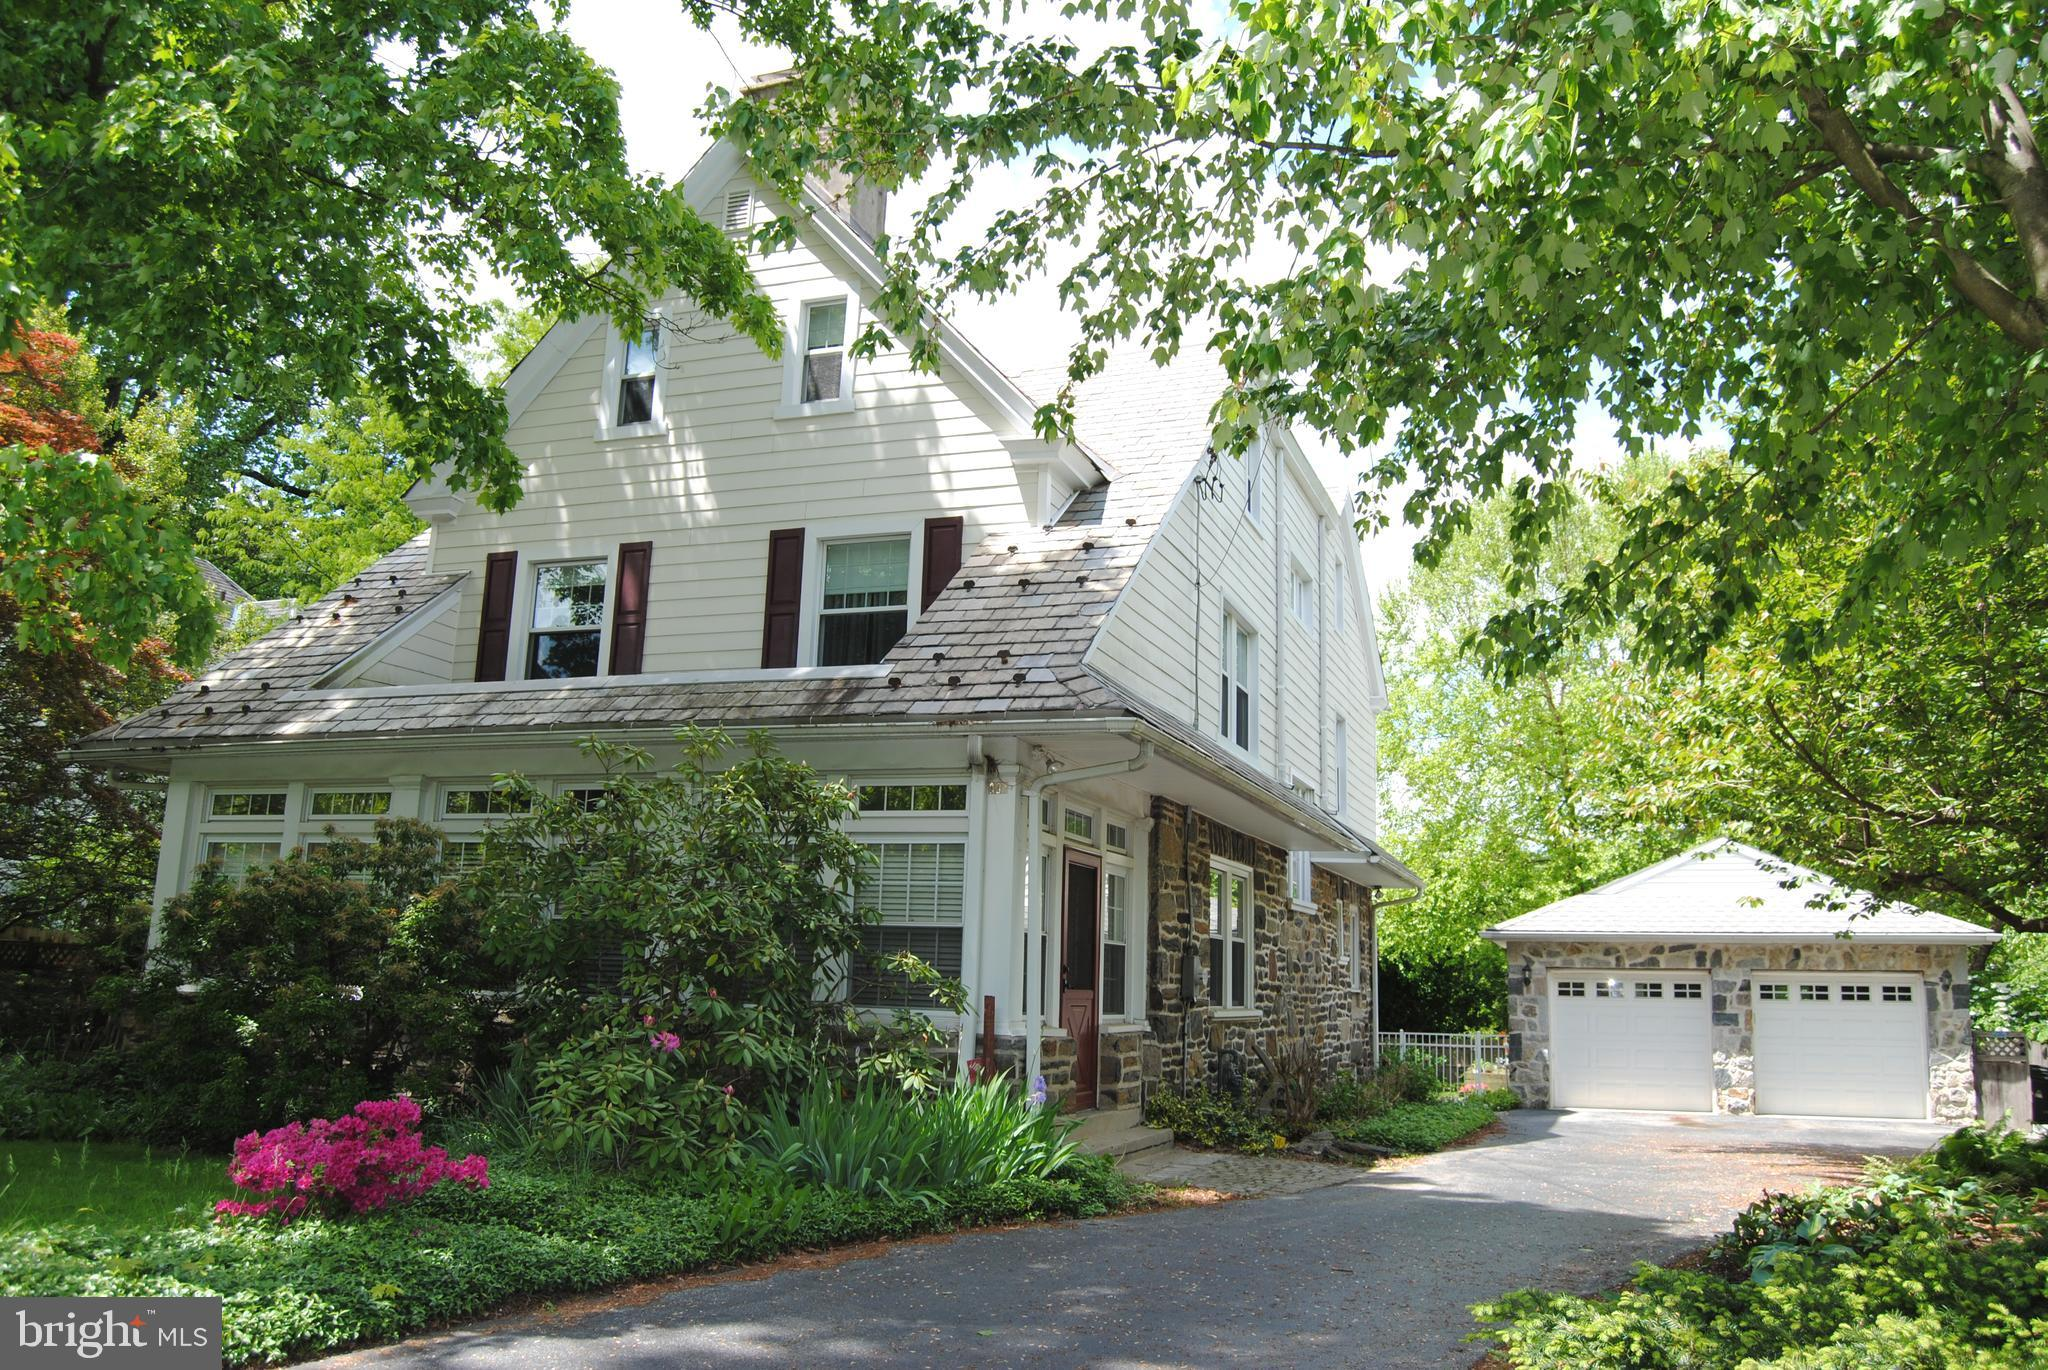 337 N BOWMAN AVENUE, MERION STATION, PA 19066